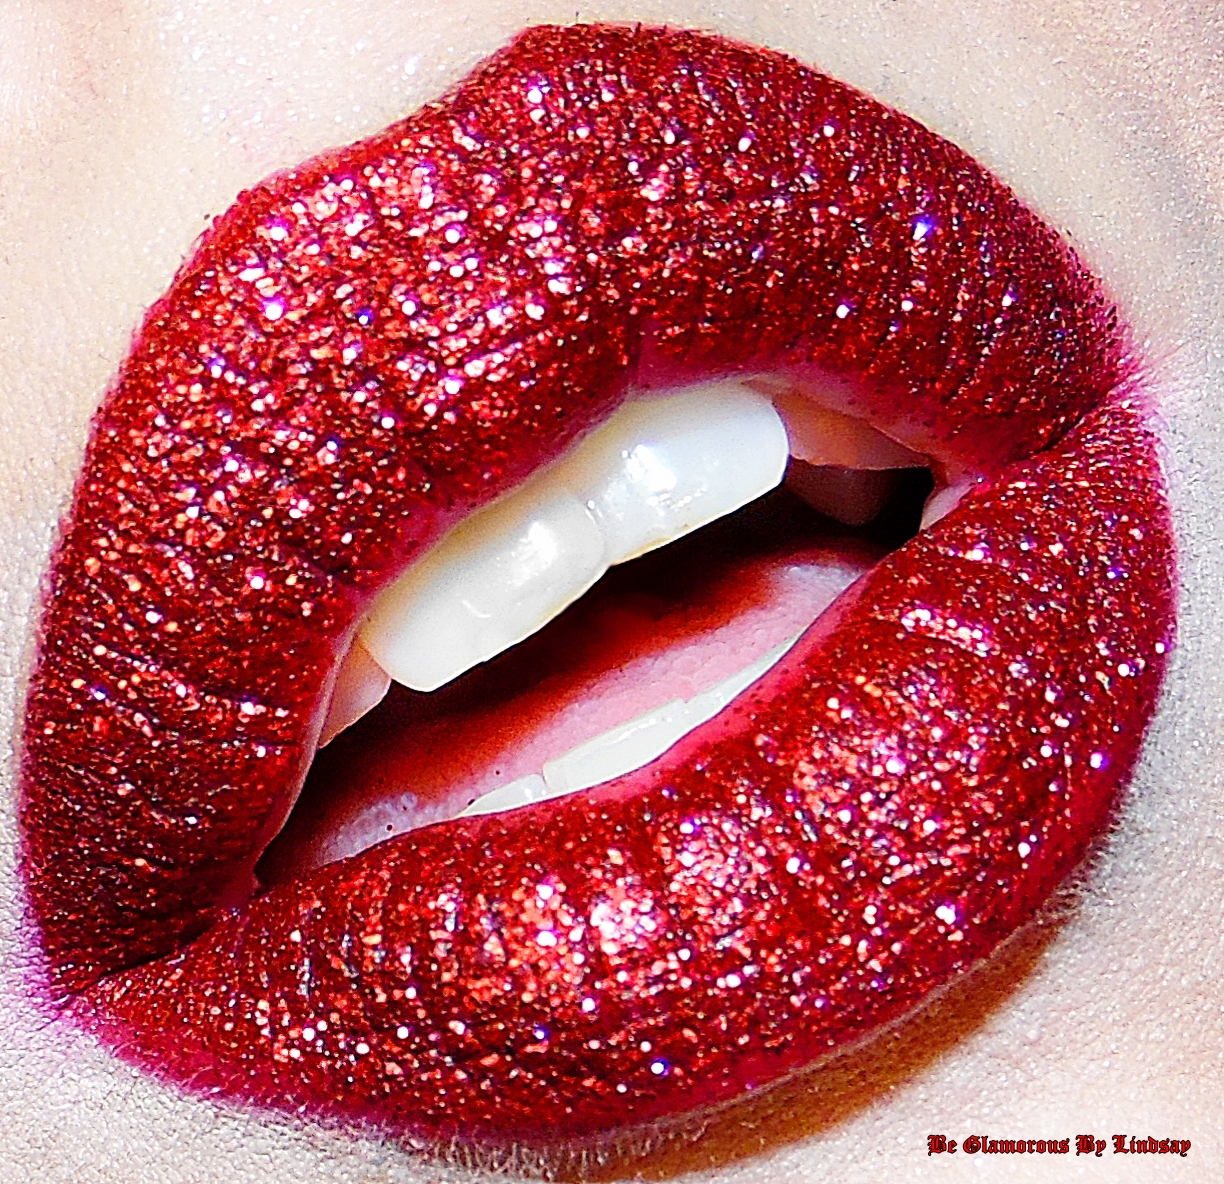 Be Glamorous By Lindsay Day 11 Glitter Lips Af-9304